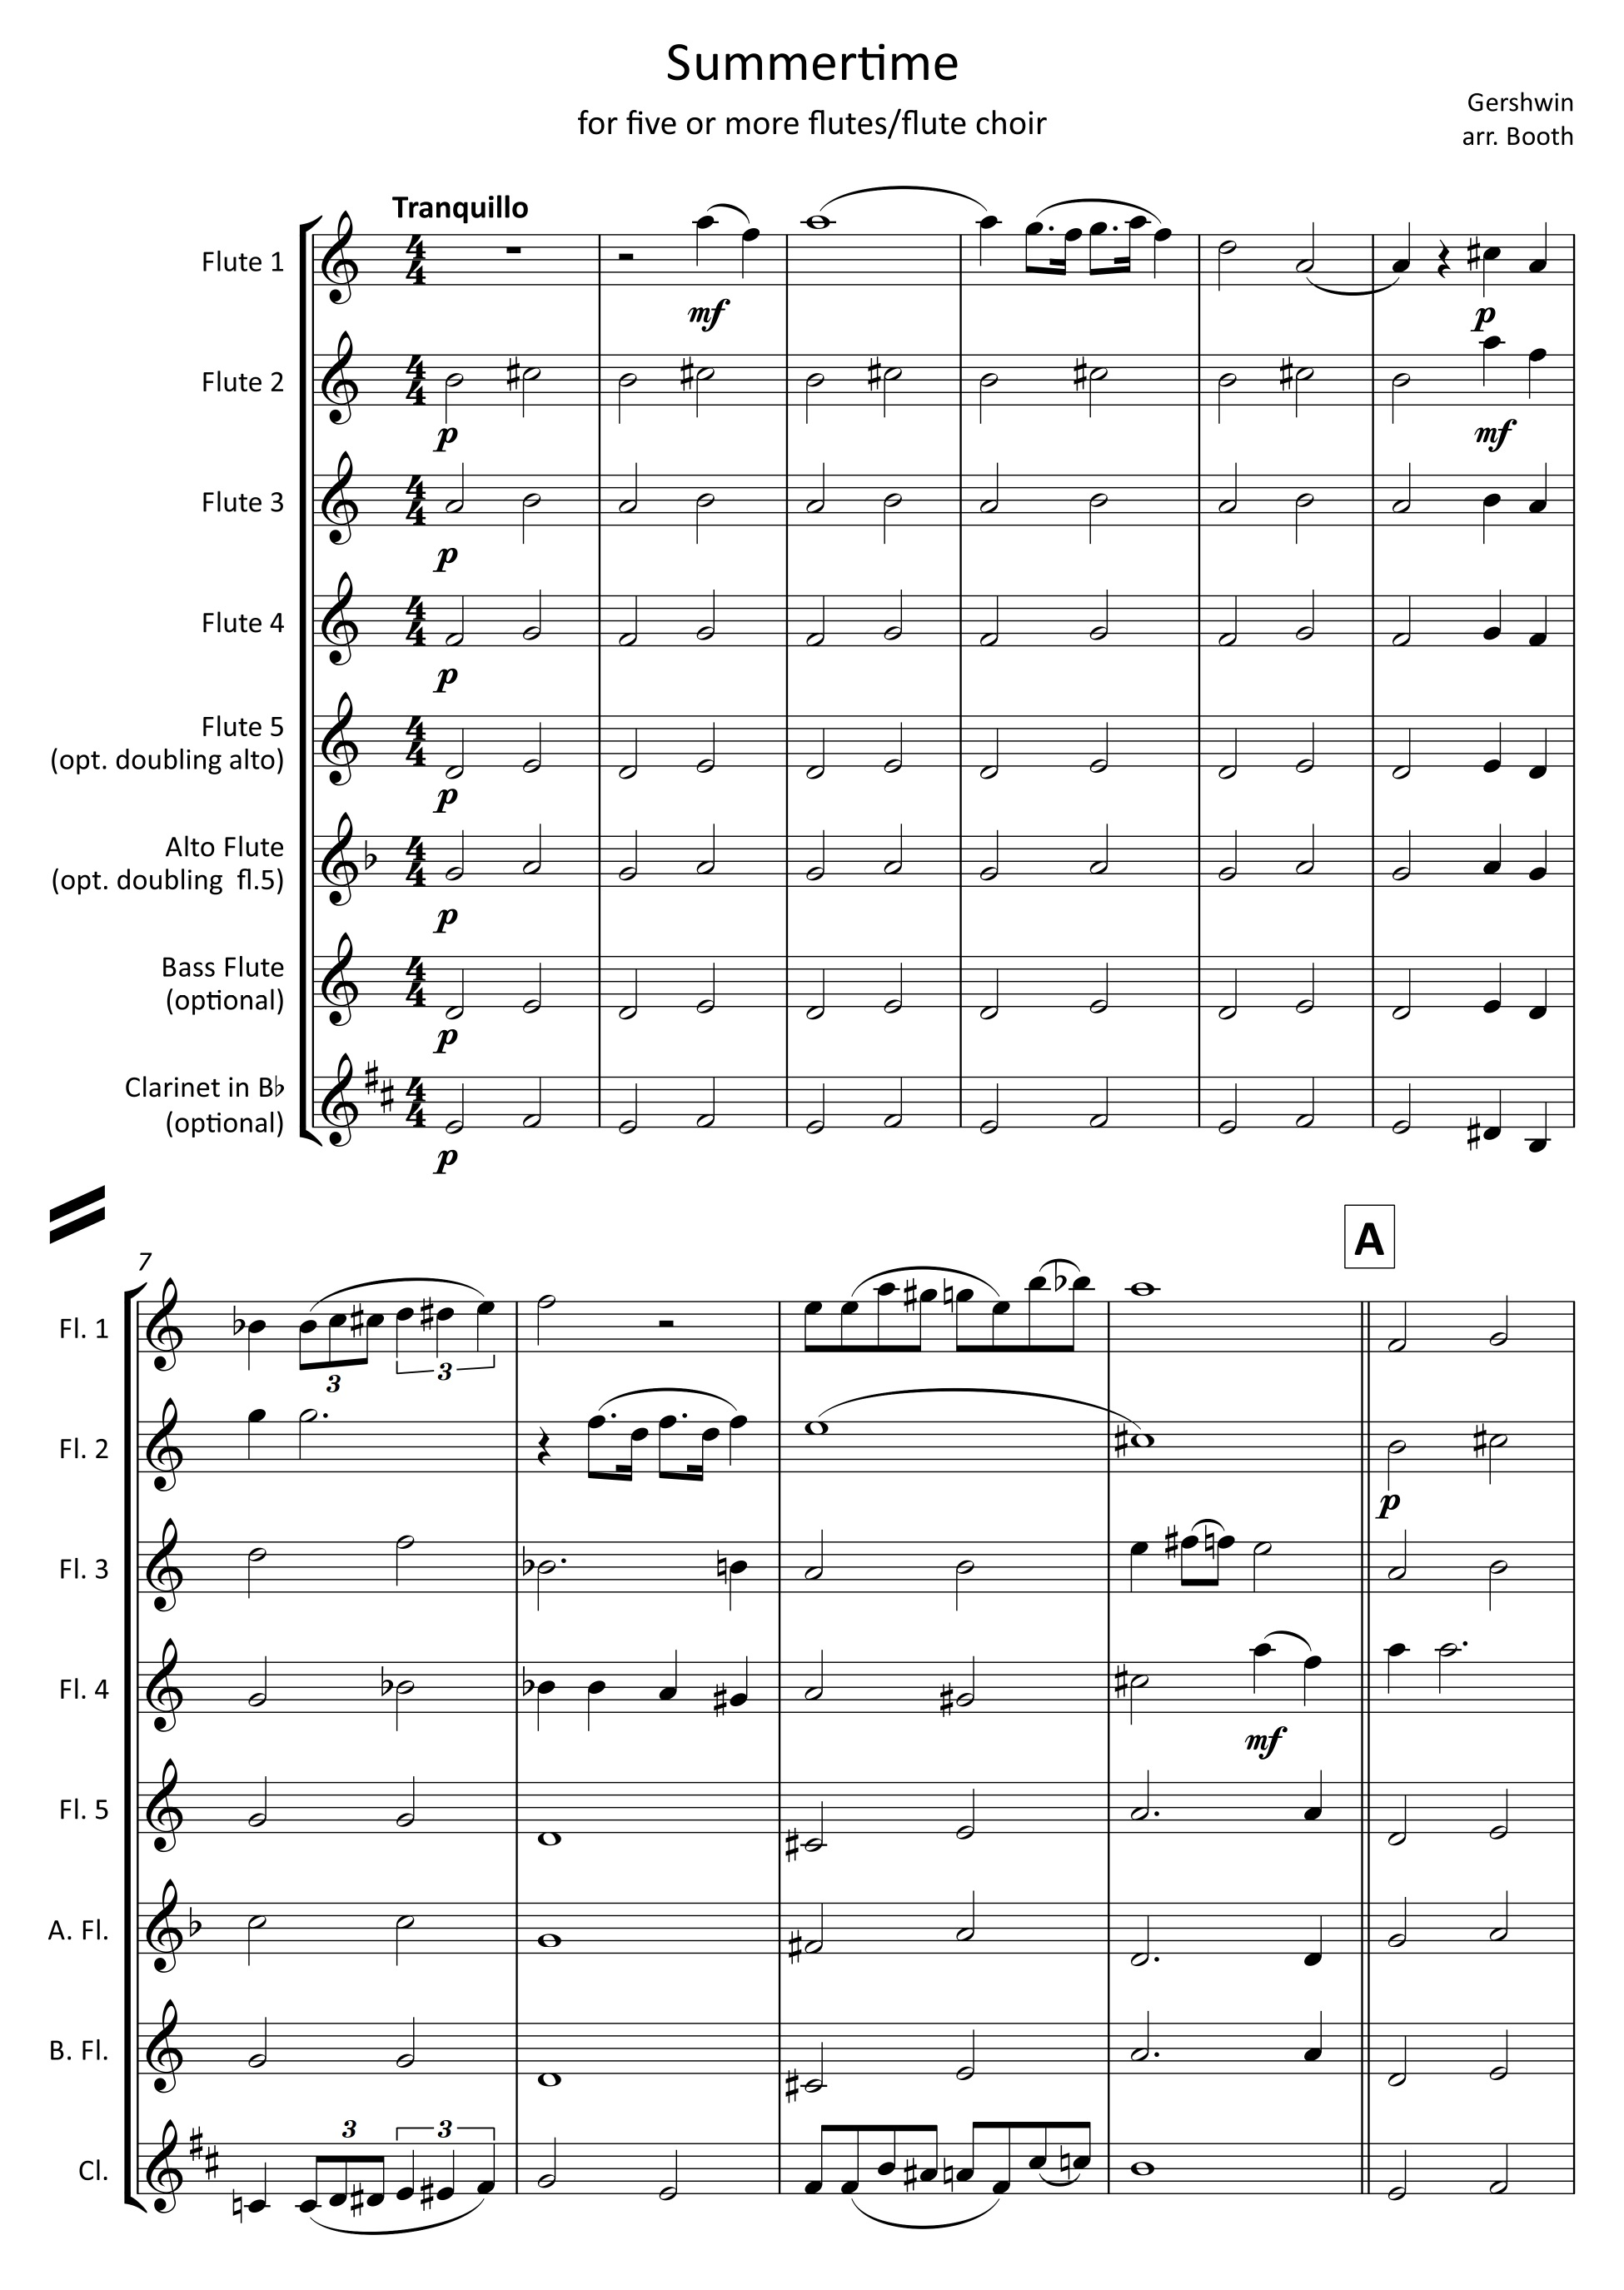 Summertime by Gershwin,  arranged by Zoë Booth for five or more flutes/flute choir